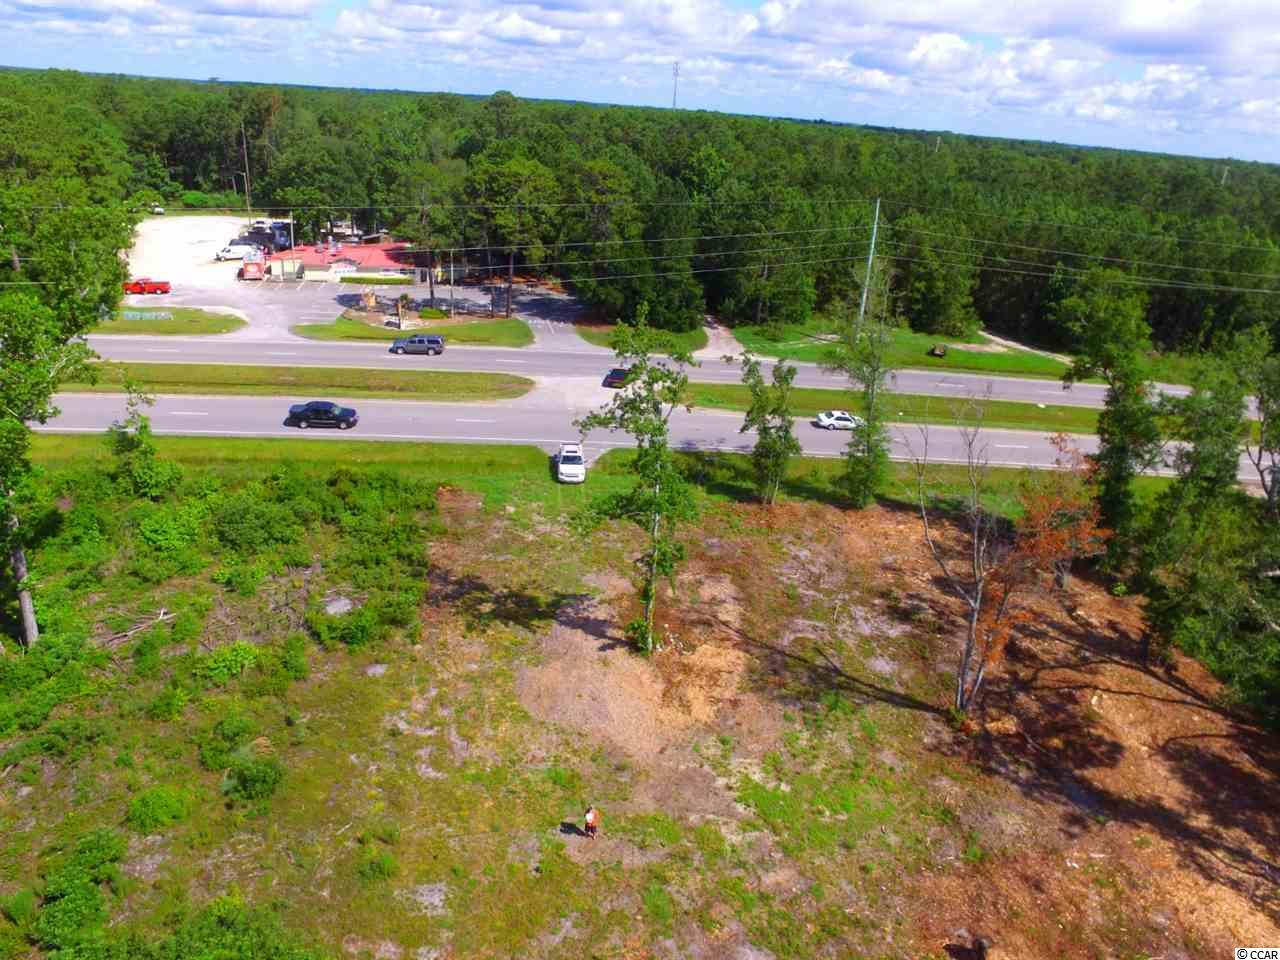 Commercial lot in Pawleys Island on Ocean Hwy (Rt 17). This lot has major road frontage on Ocean Hwy (Rt 17) and with a daily traffic count over 5,000 vehicles per day. This lot has been bushed hogged and semi cleared. This commercial lot is great for any business that requires big exposure. Do not miss out on this commercial opportunity.